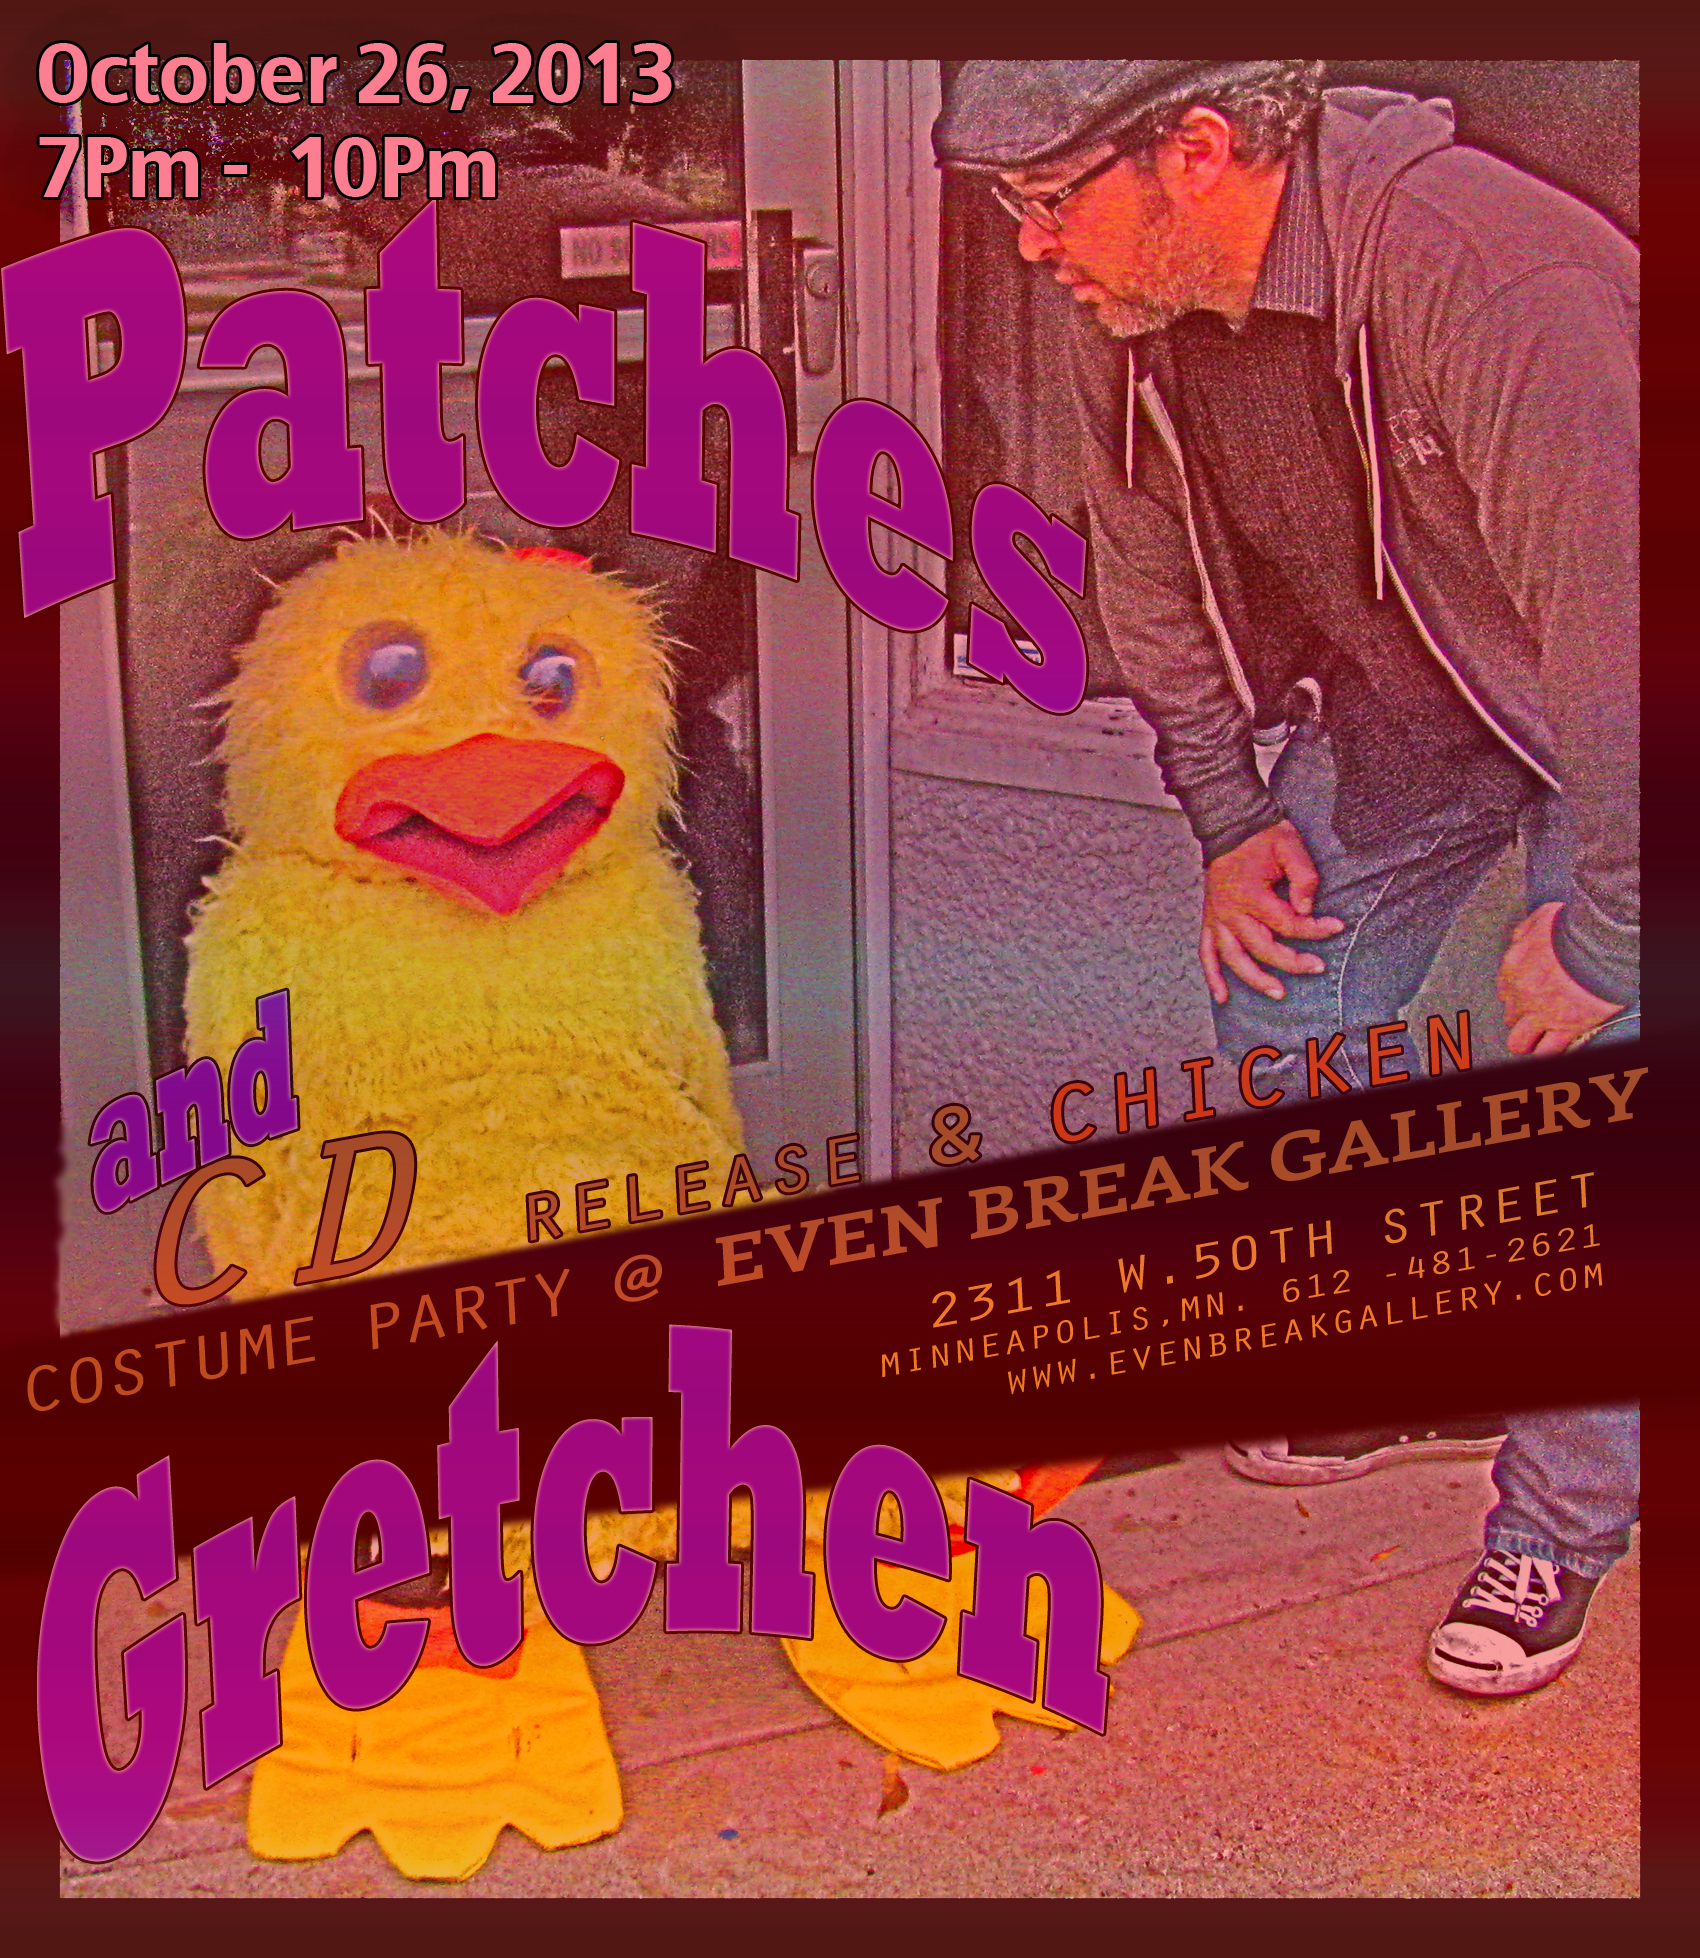 Patches and Gretchen CD RELEASE & CHICKEN COSTUME PARTY @ EVEN BREAK GALLERY October 26th, 2013 Poster by Gretchen Seichrist / Photo by Marc Percansky